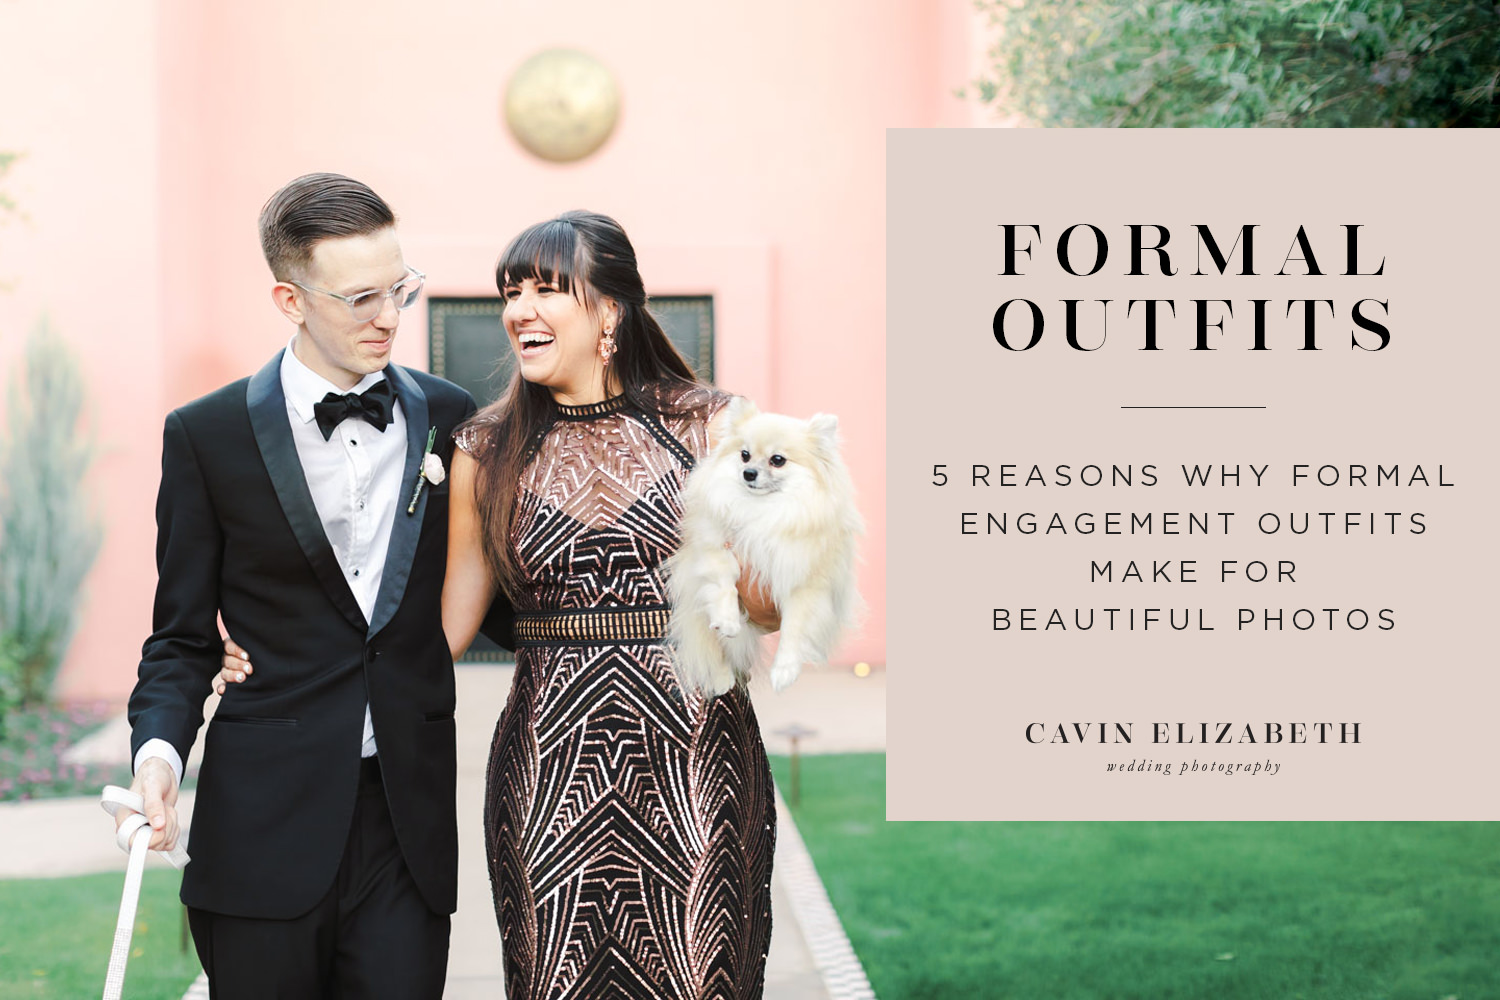 5 Reasons Why Formal Engagement Outfits Make for Beautiful Photos